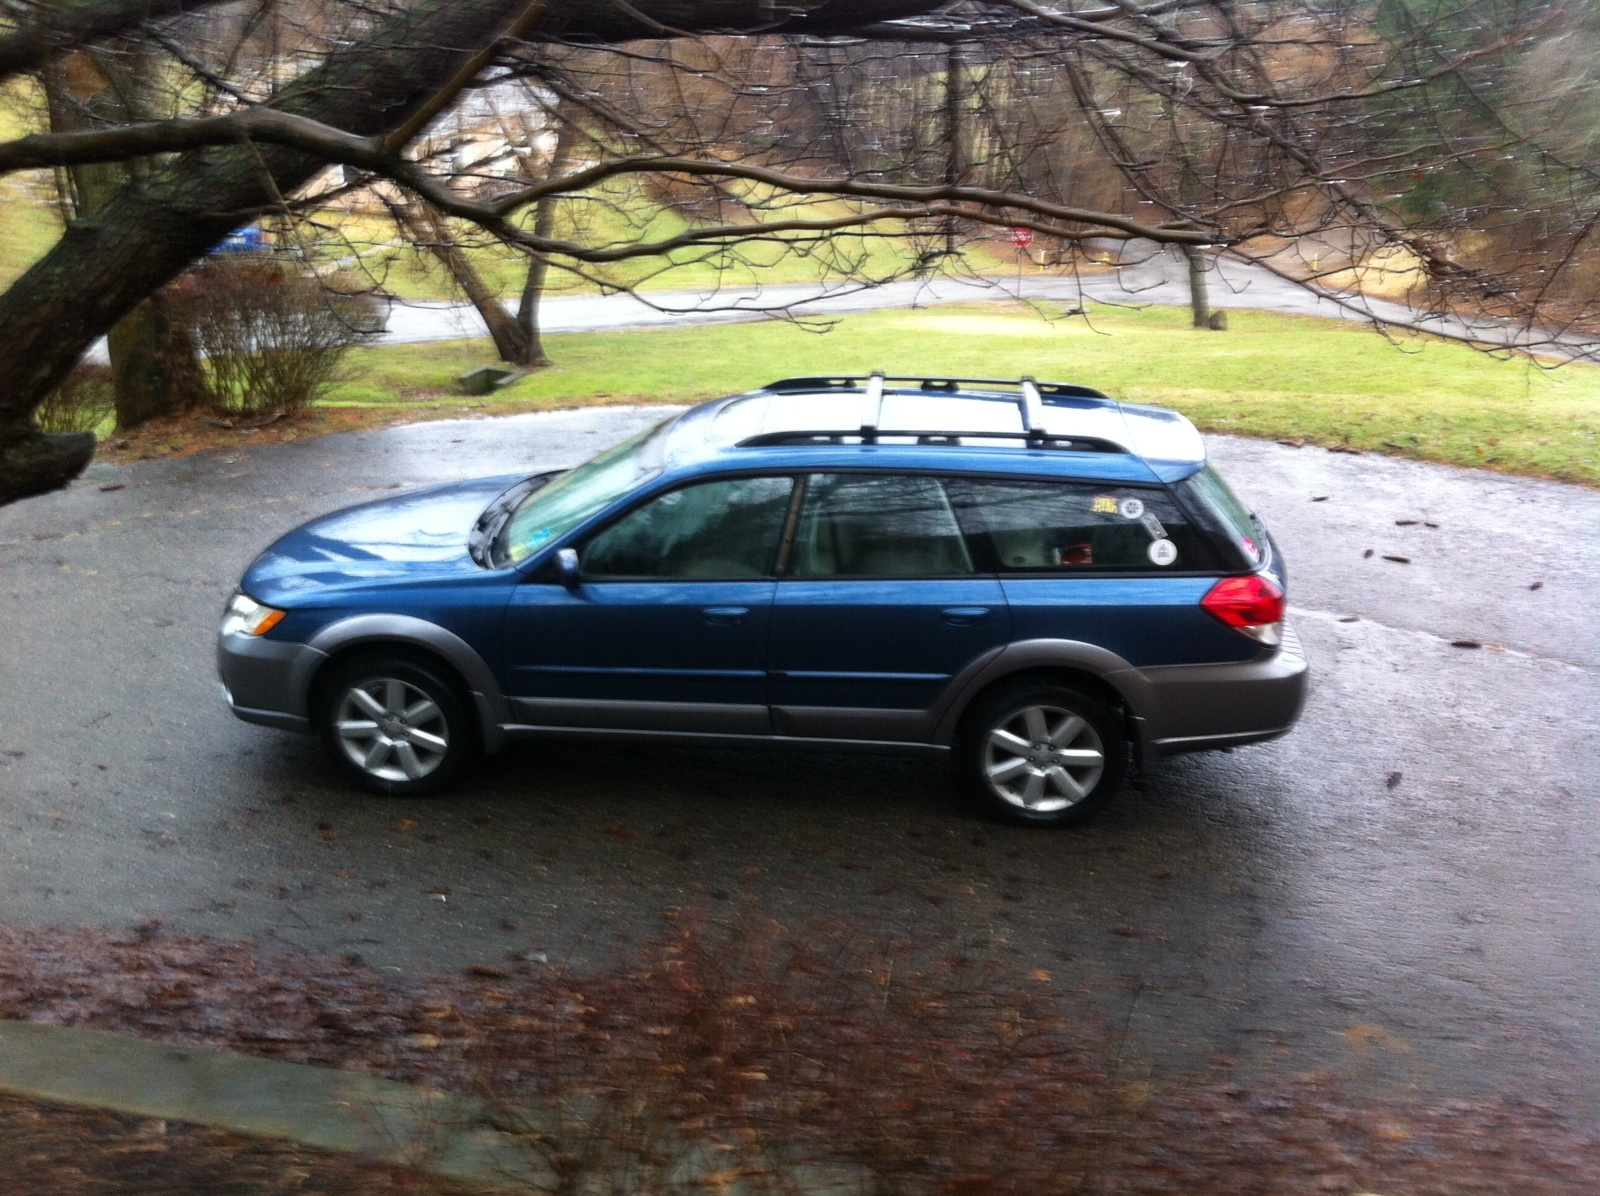 Subaru Outback Questions 2008 Cargurus 1998 Head Gasket In Perfect Condition If I Can Have The Engine Replaced He Said His Son Blew It Up Timing Belt Broke 80k Miles